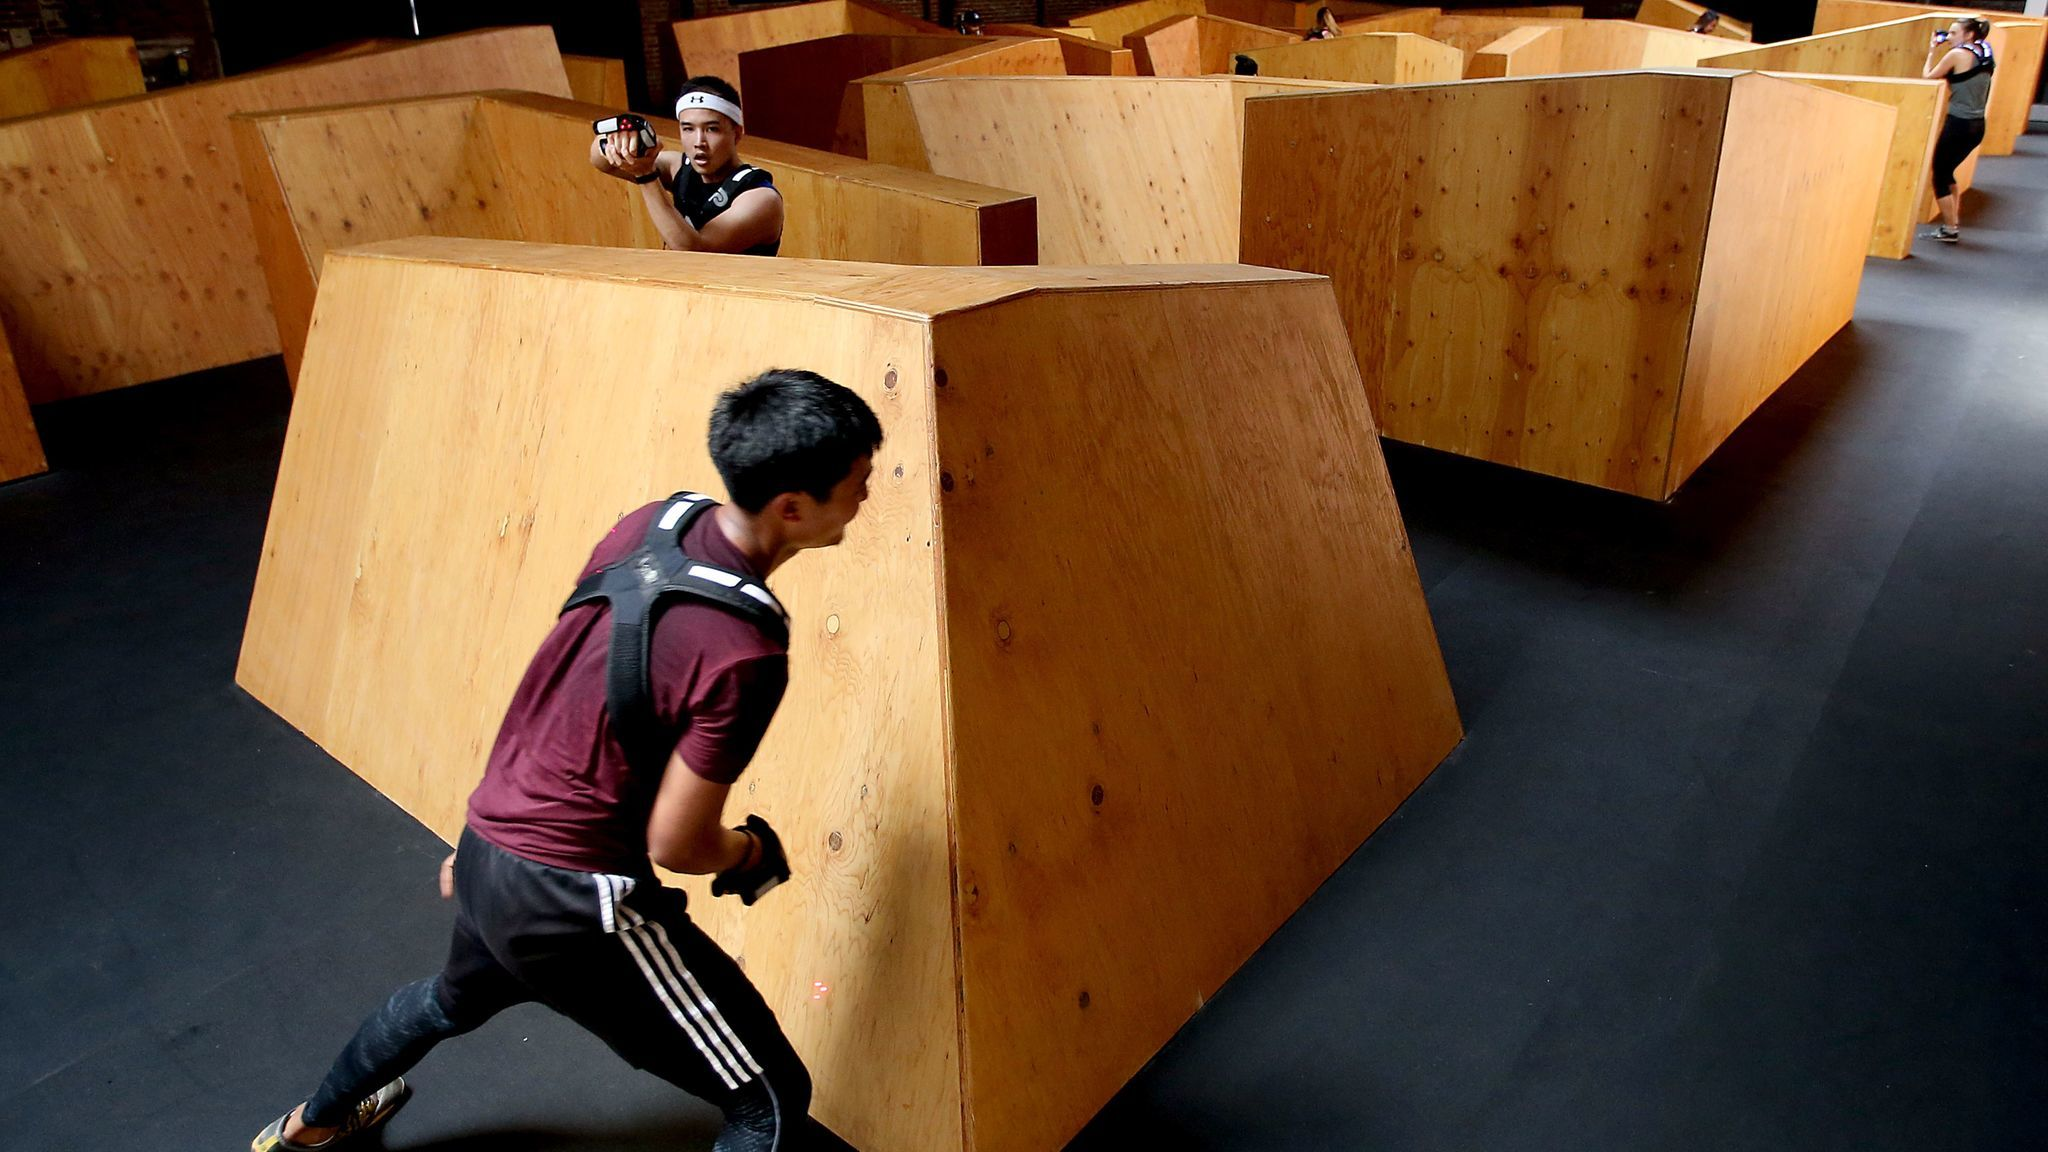 Avoiding opponents in the maze can be an intense workout.